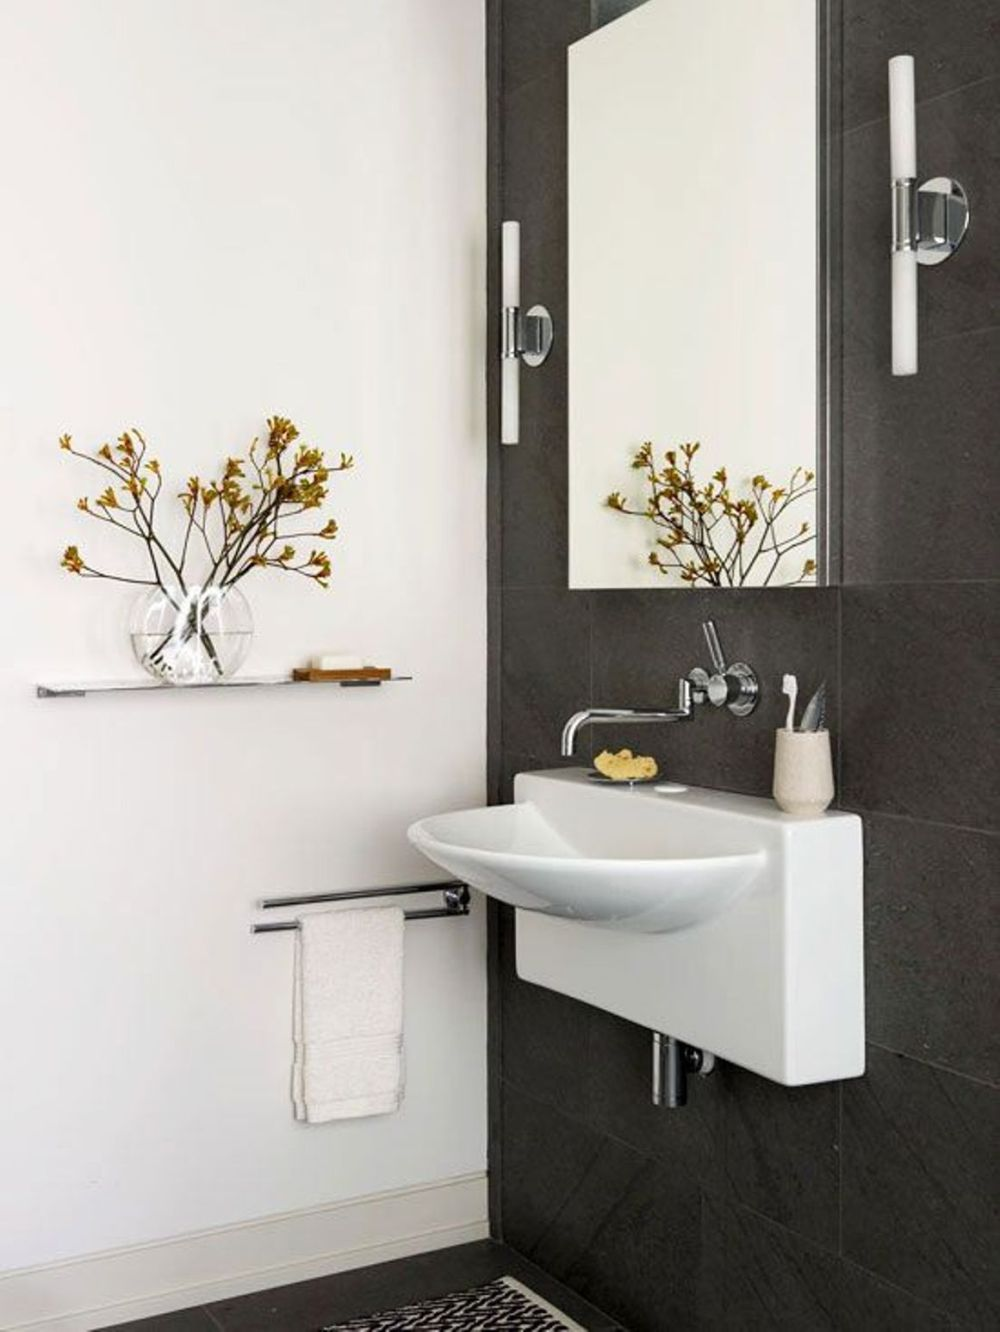 wall mount sinks for small bathrooms ideas with wall mounted mirror amazing sink design for small bathroom